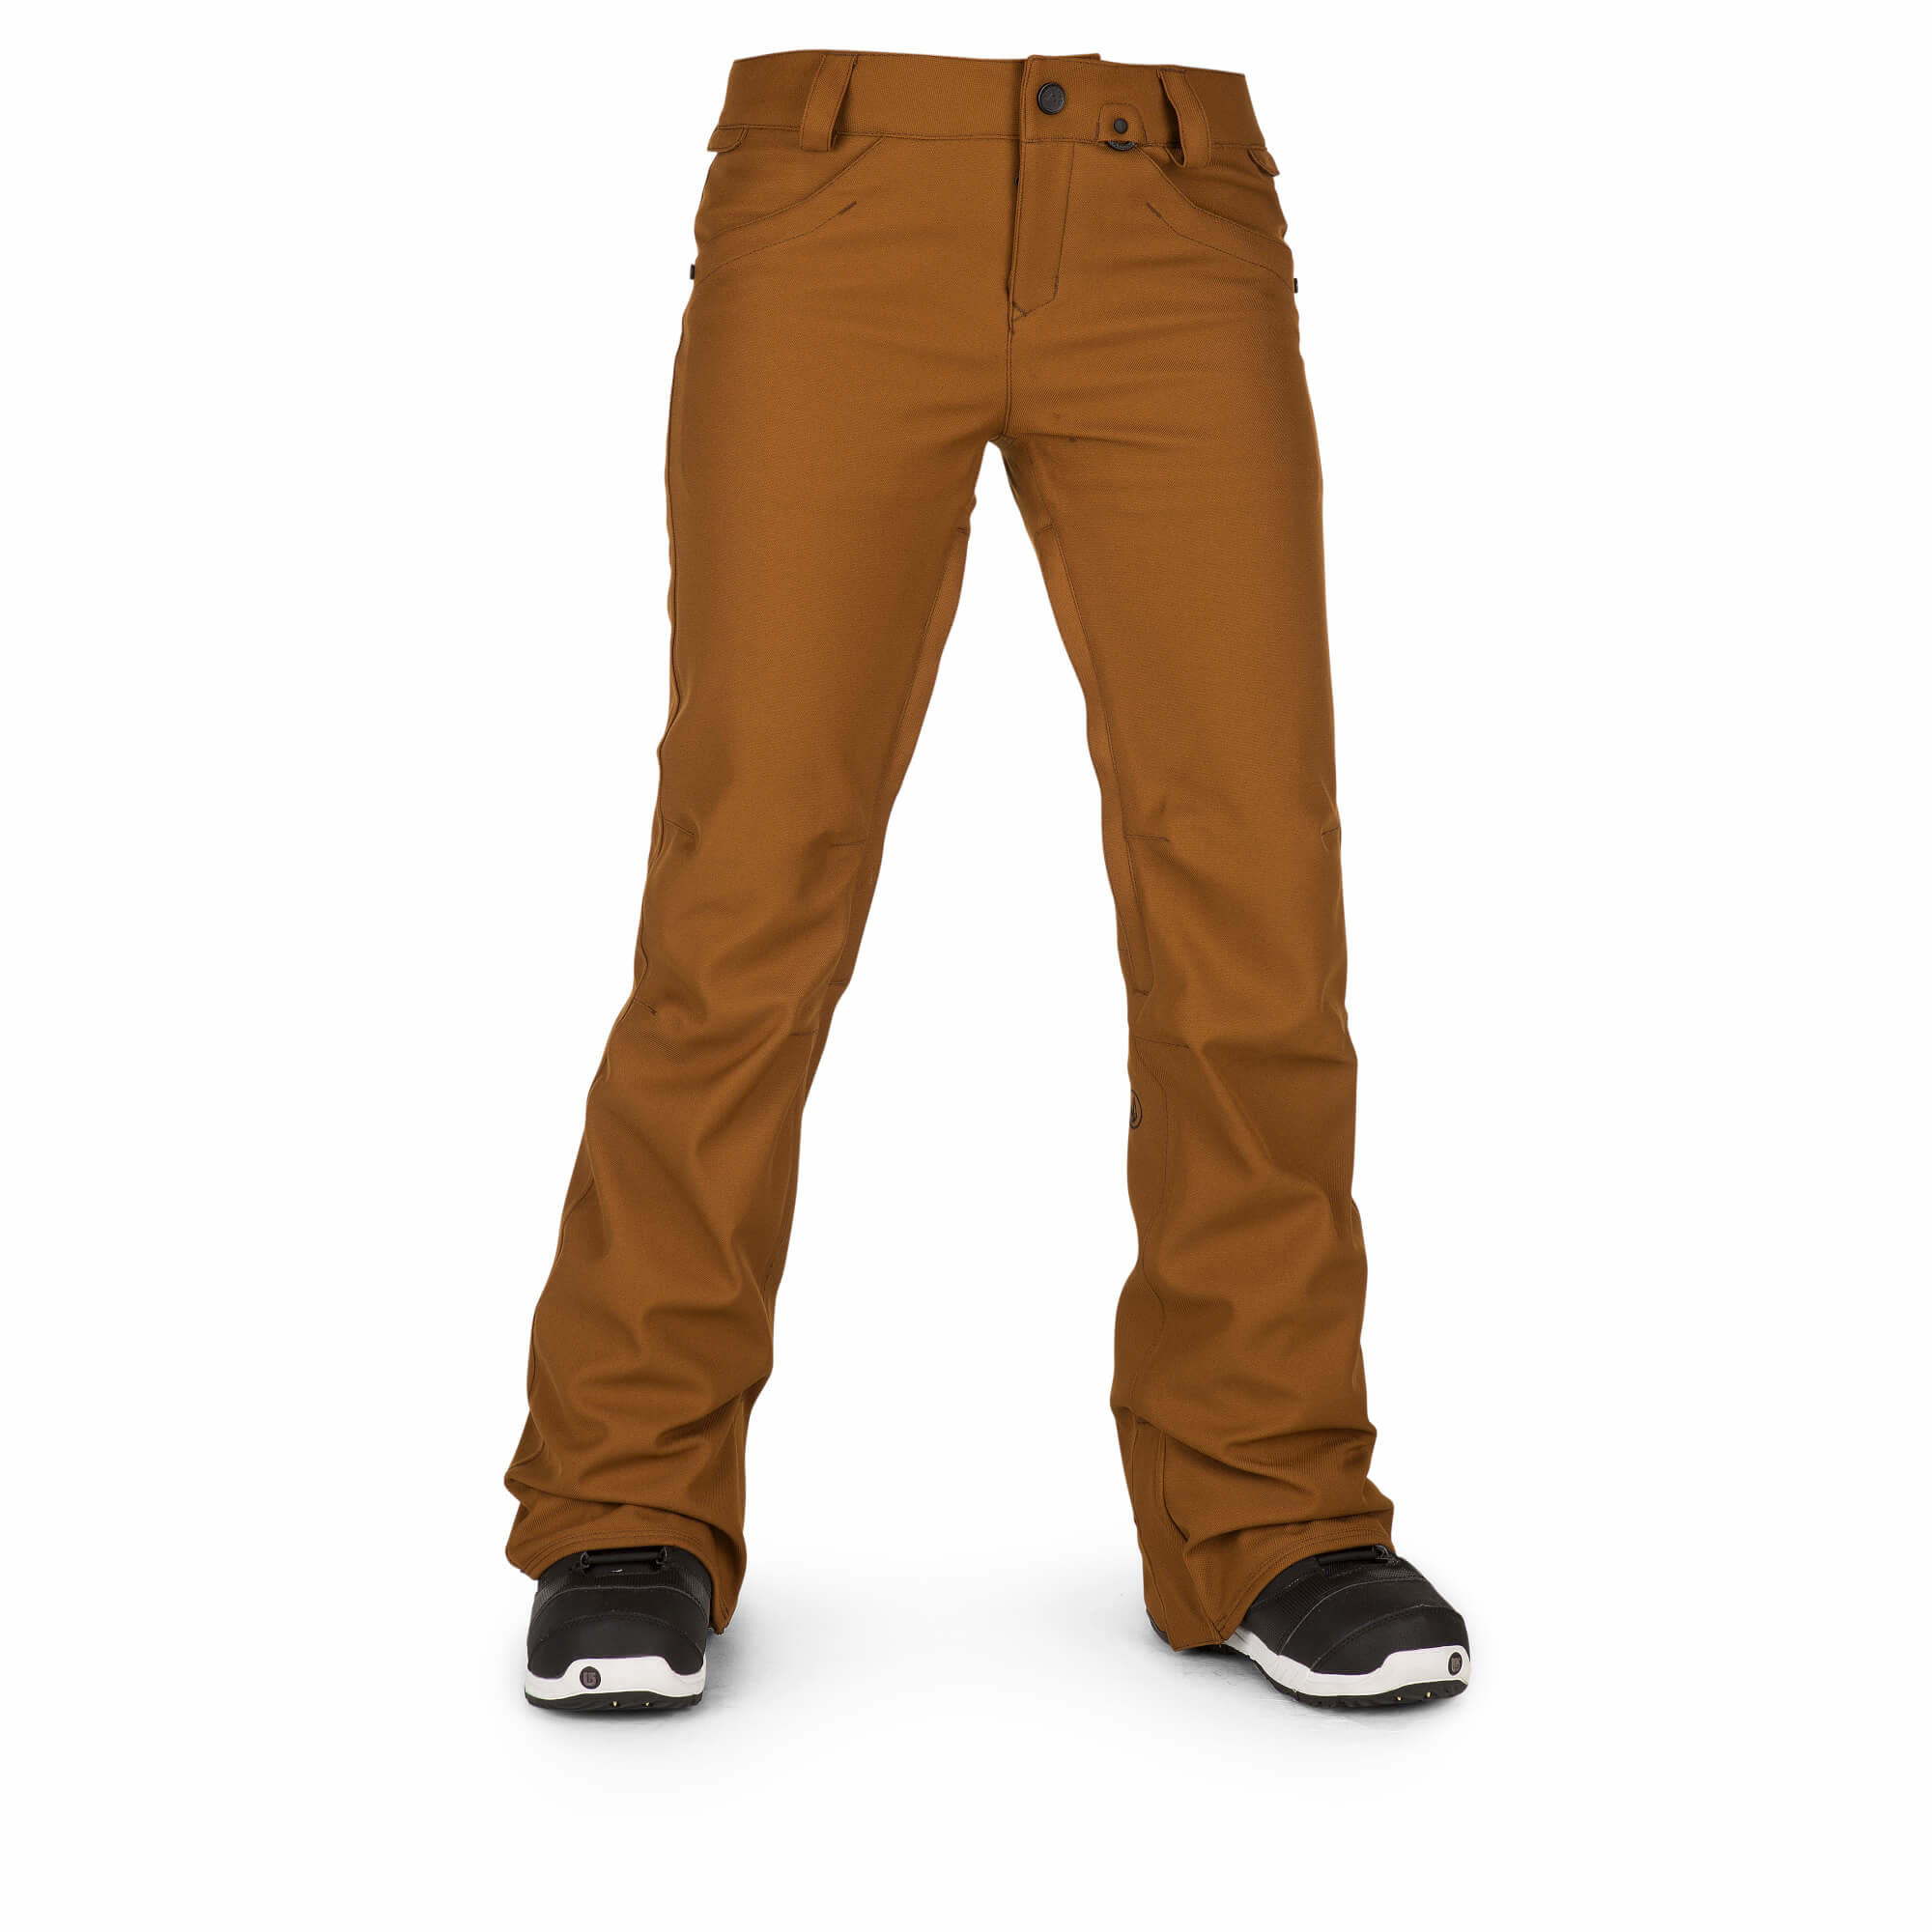 Species stretch pant-3